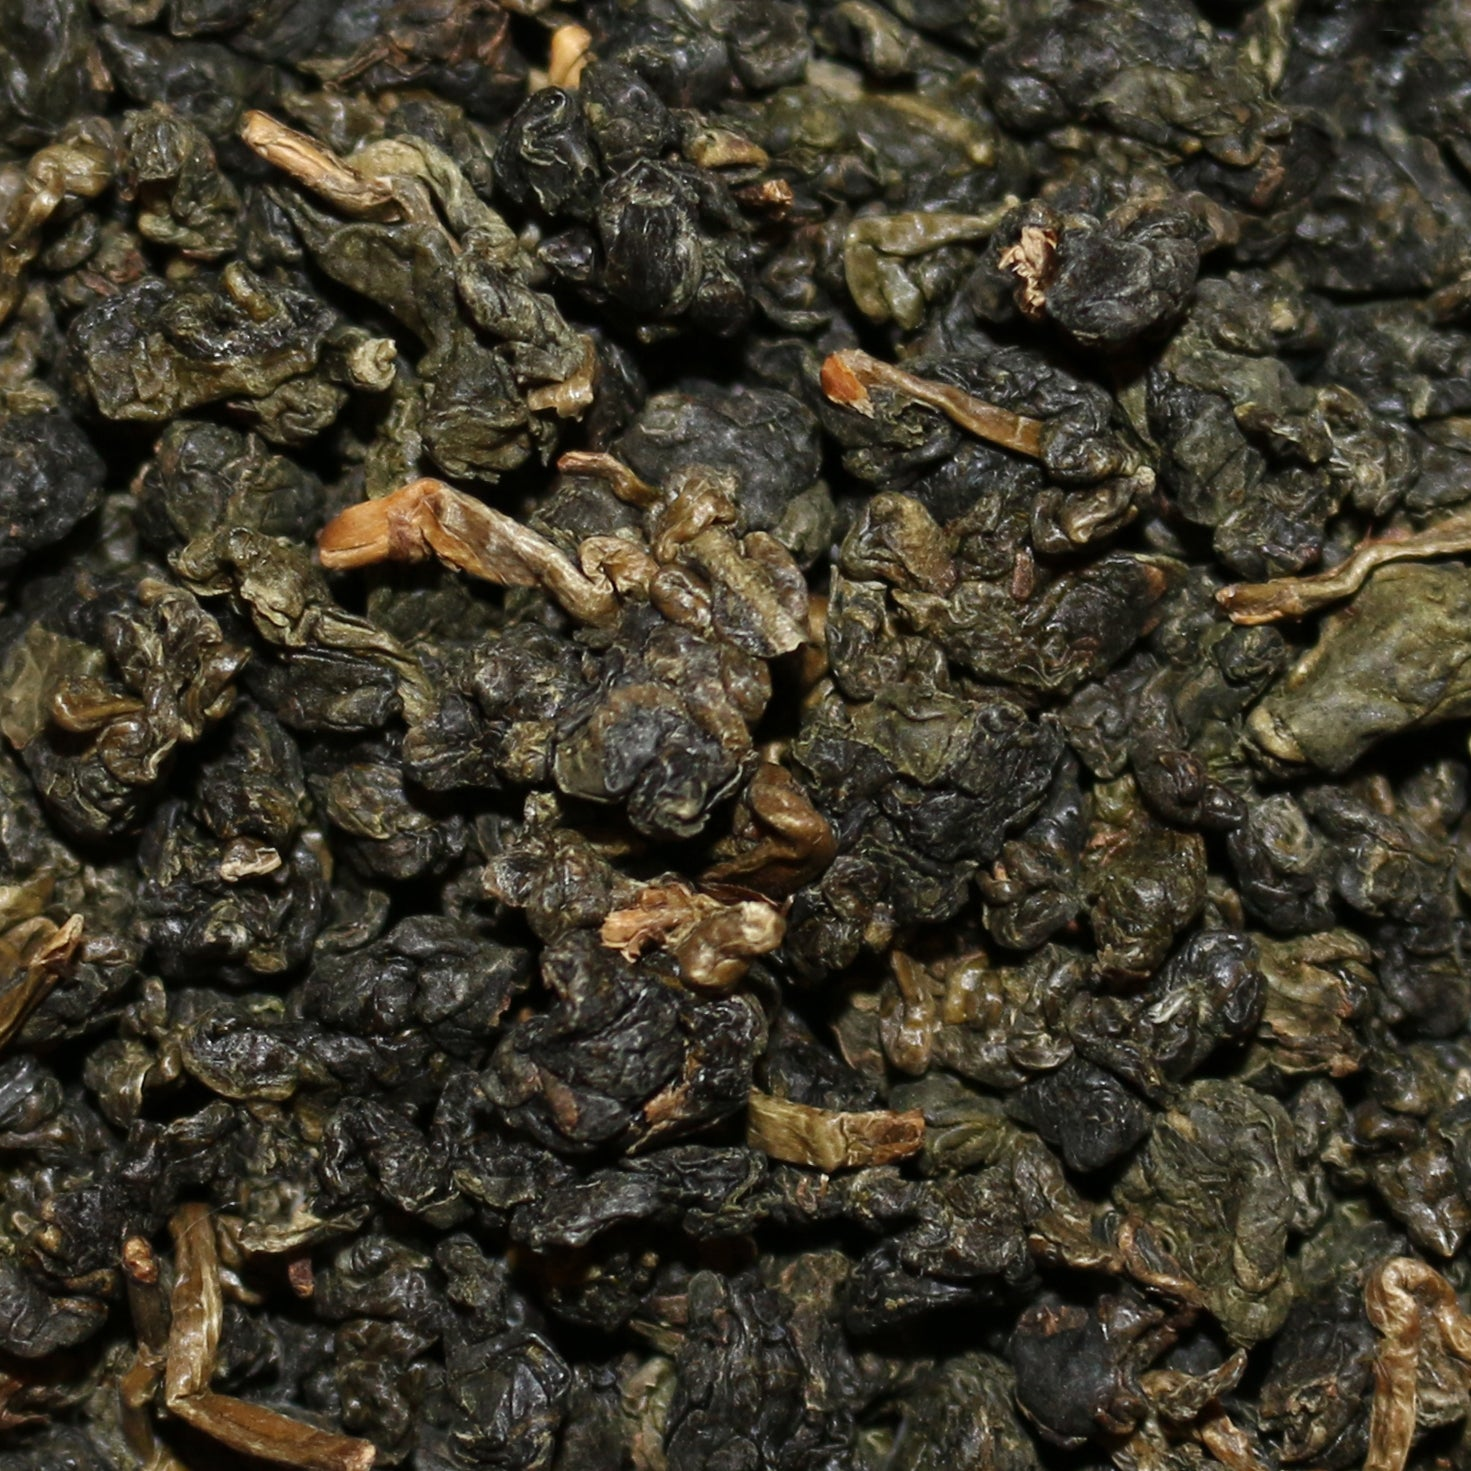 Li Shan (Pear Mountain) Formosa Wulong Tea